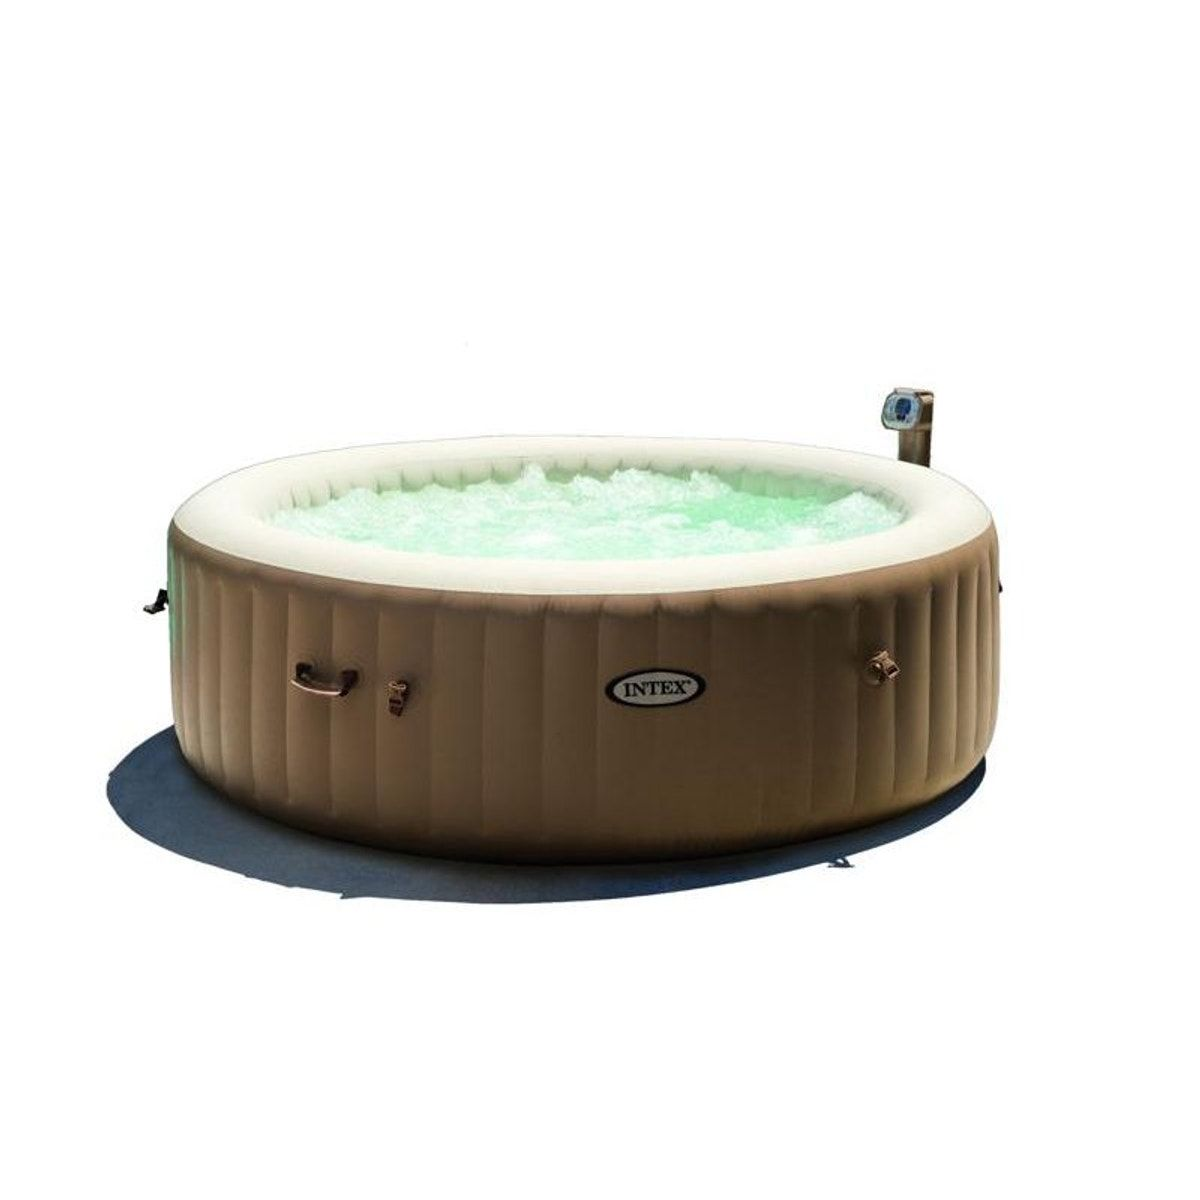 Spa Gonflable Pure Spa Bulles 6 Personnes Spa Gonflable Spa Gonflable Intex Et Gonflable